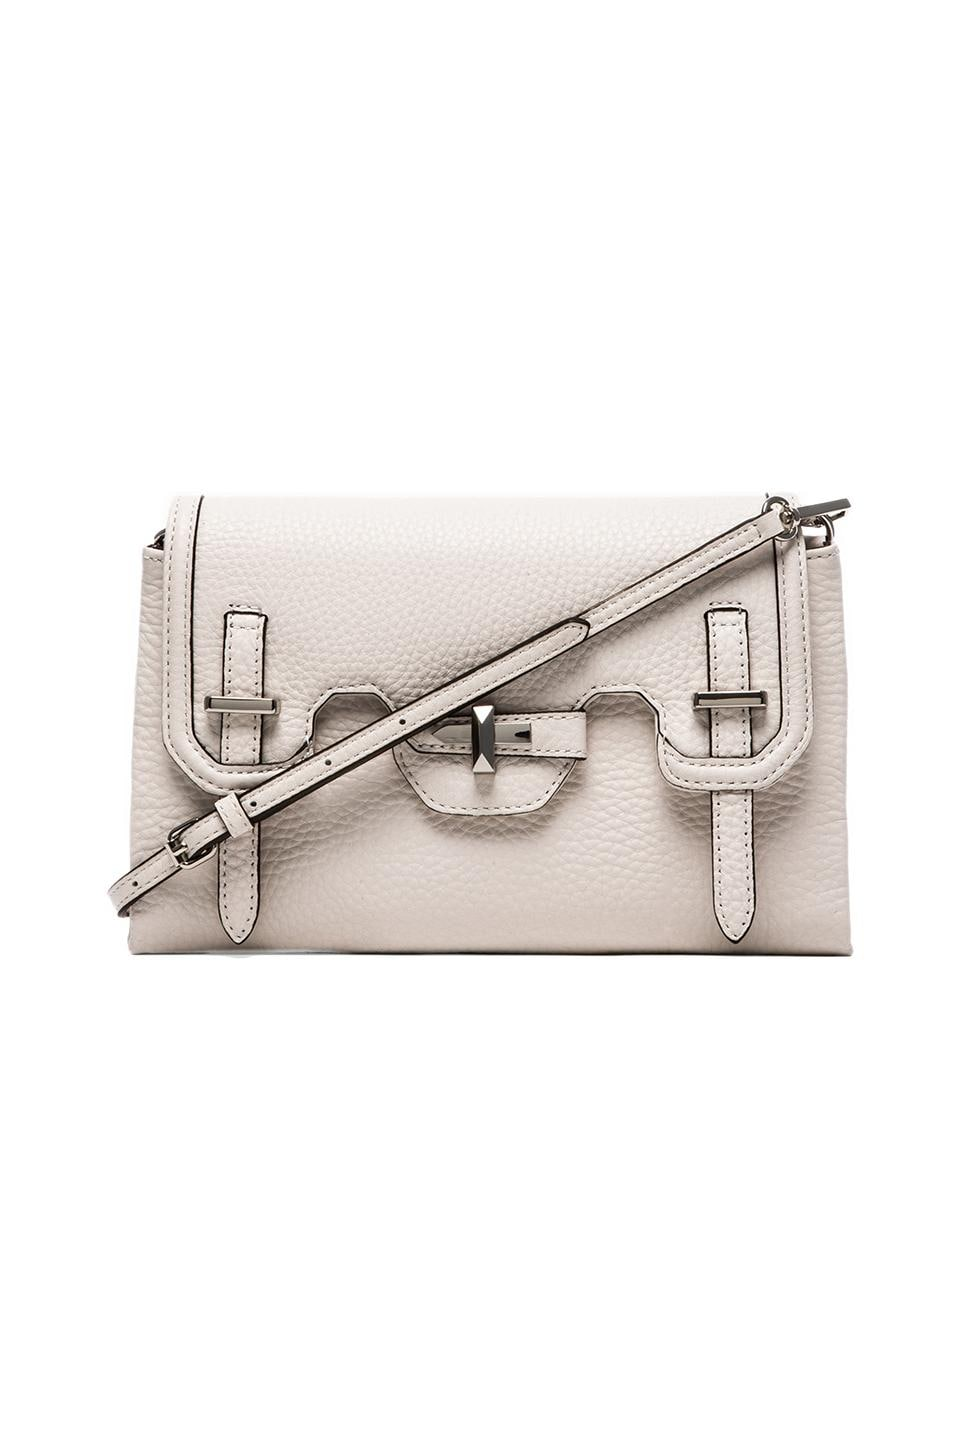 Rebecca Minkoff Mini Jules Clutch in White